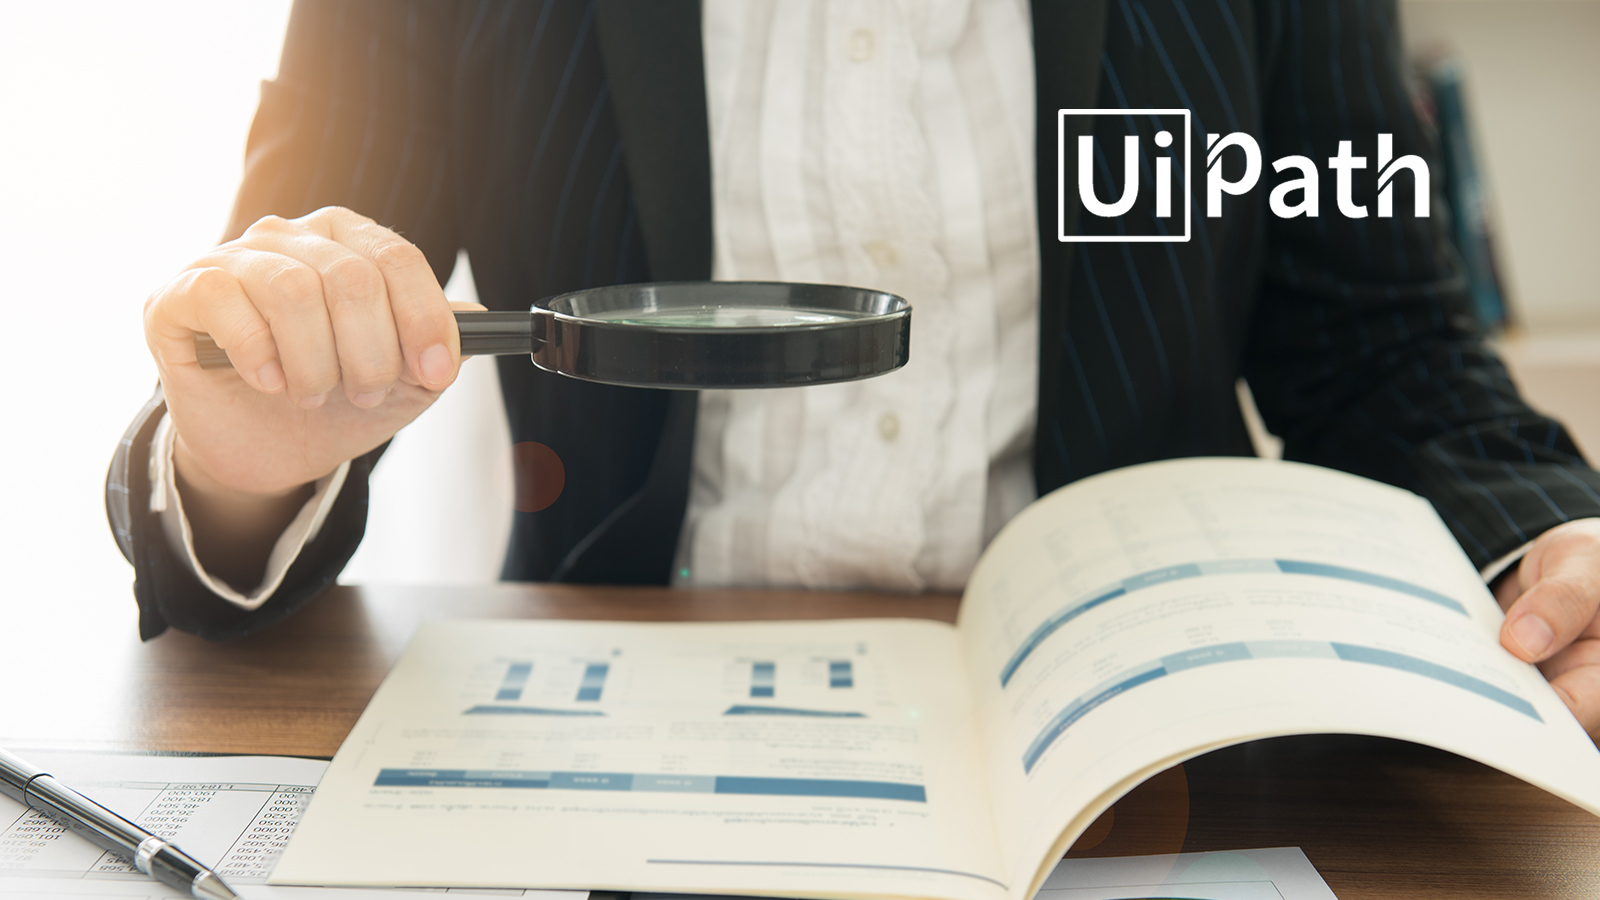 UiPath Announces the Availability of UiPath 2018 Platform